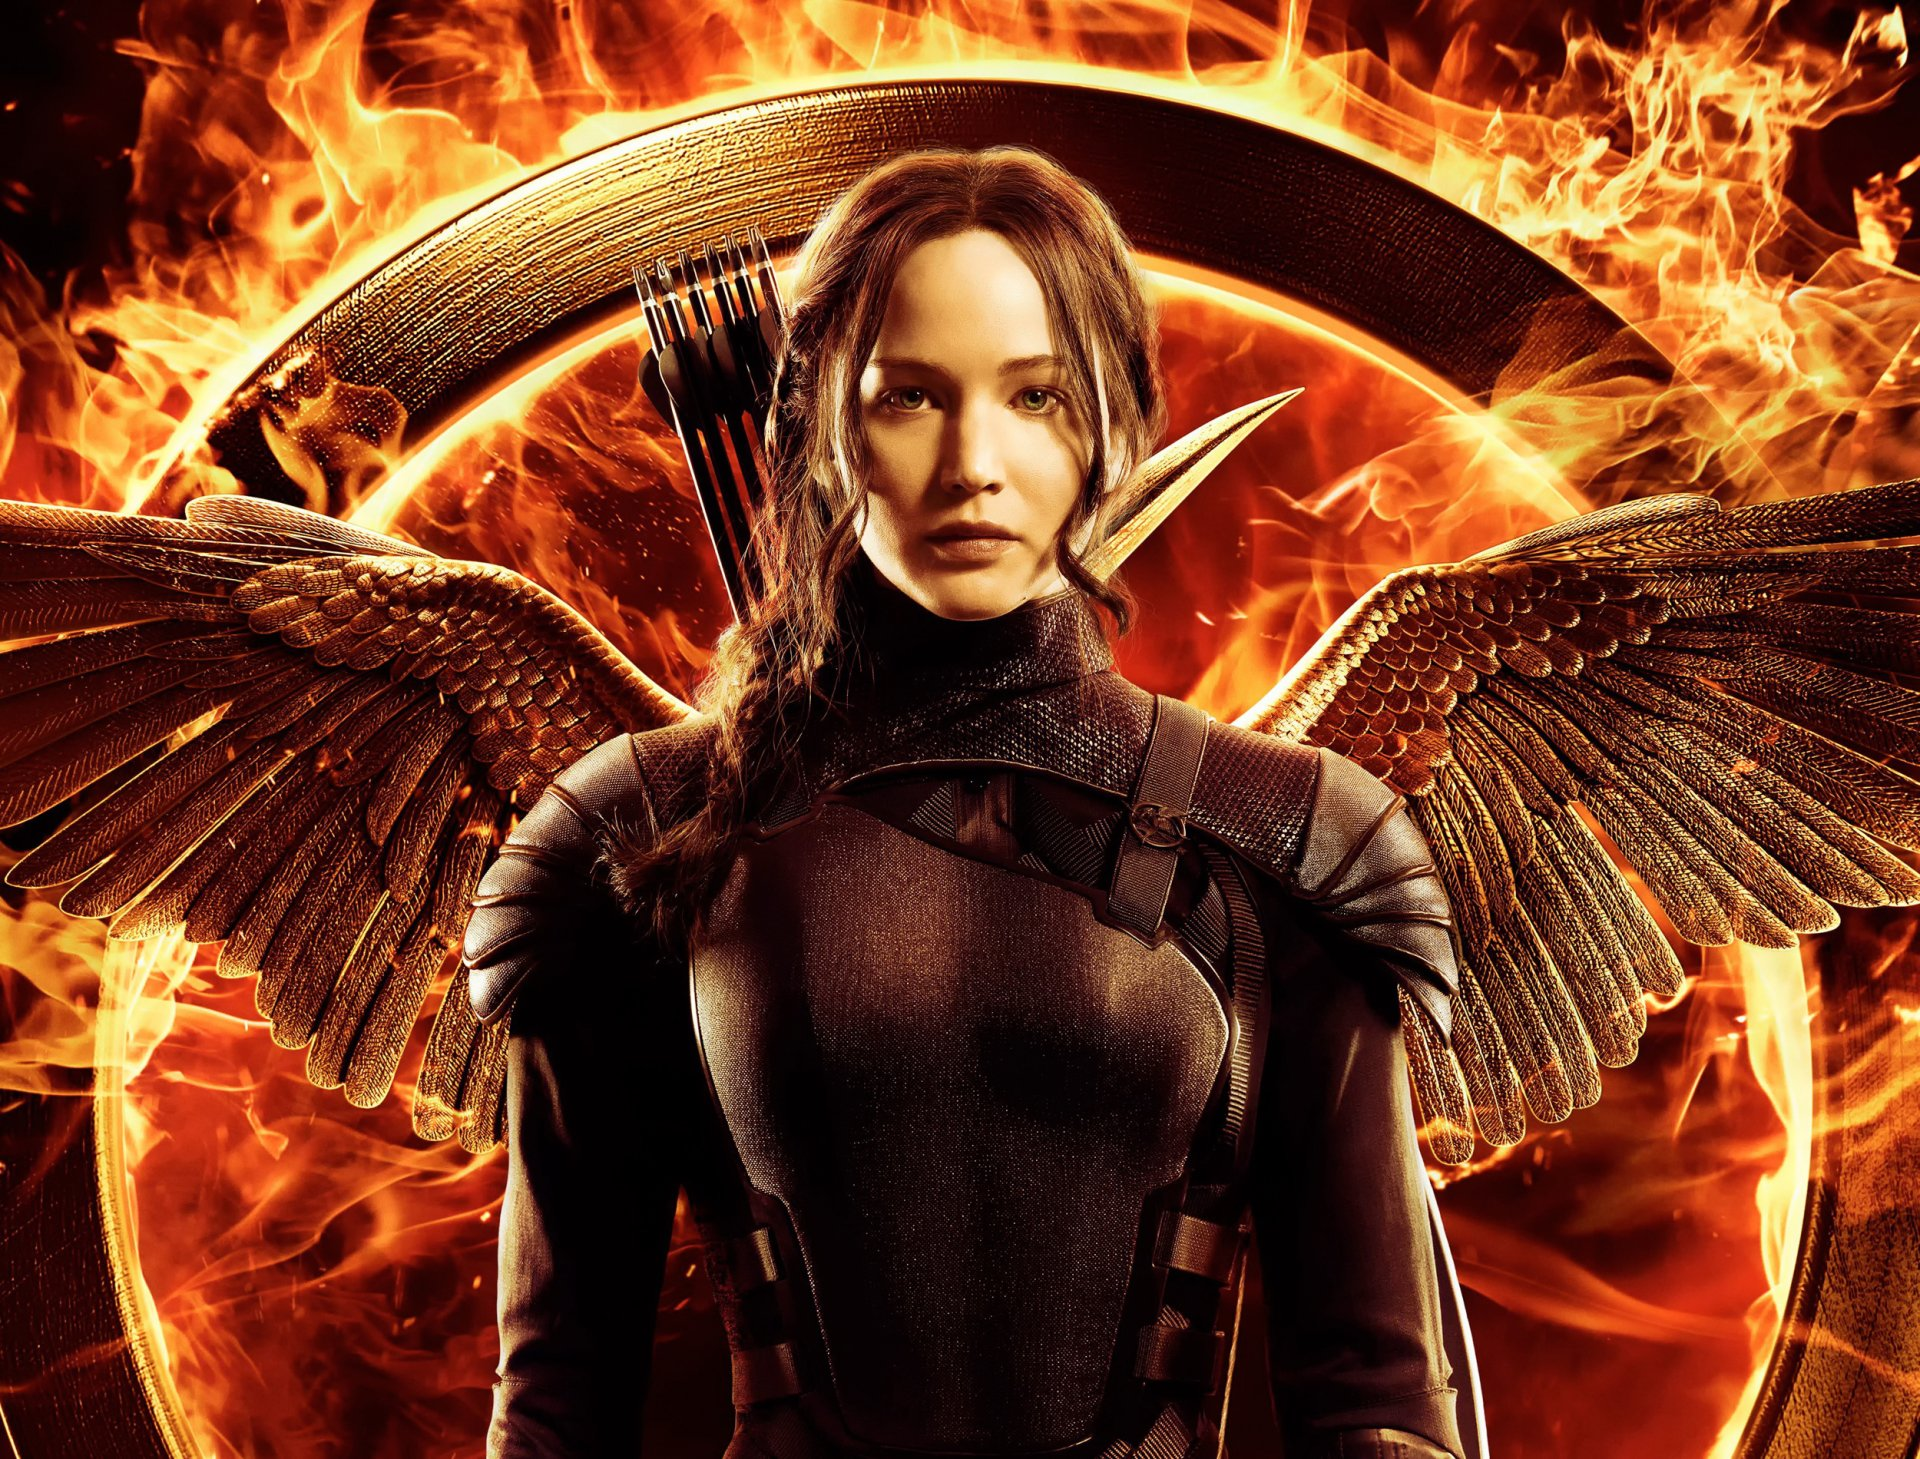 Films - Hunger Games : La Révolte, partie 1  Hunger Games Jennifer Lawrence Films Wings Feu Flamme Katniss Everdeen Fond d'écran